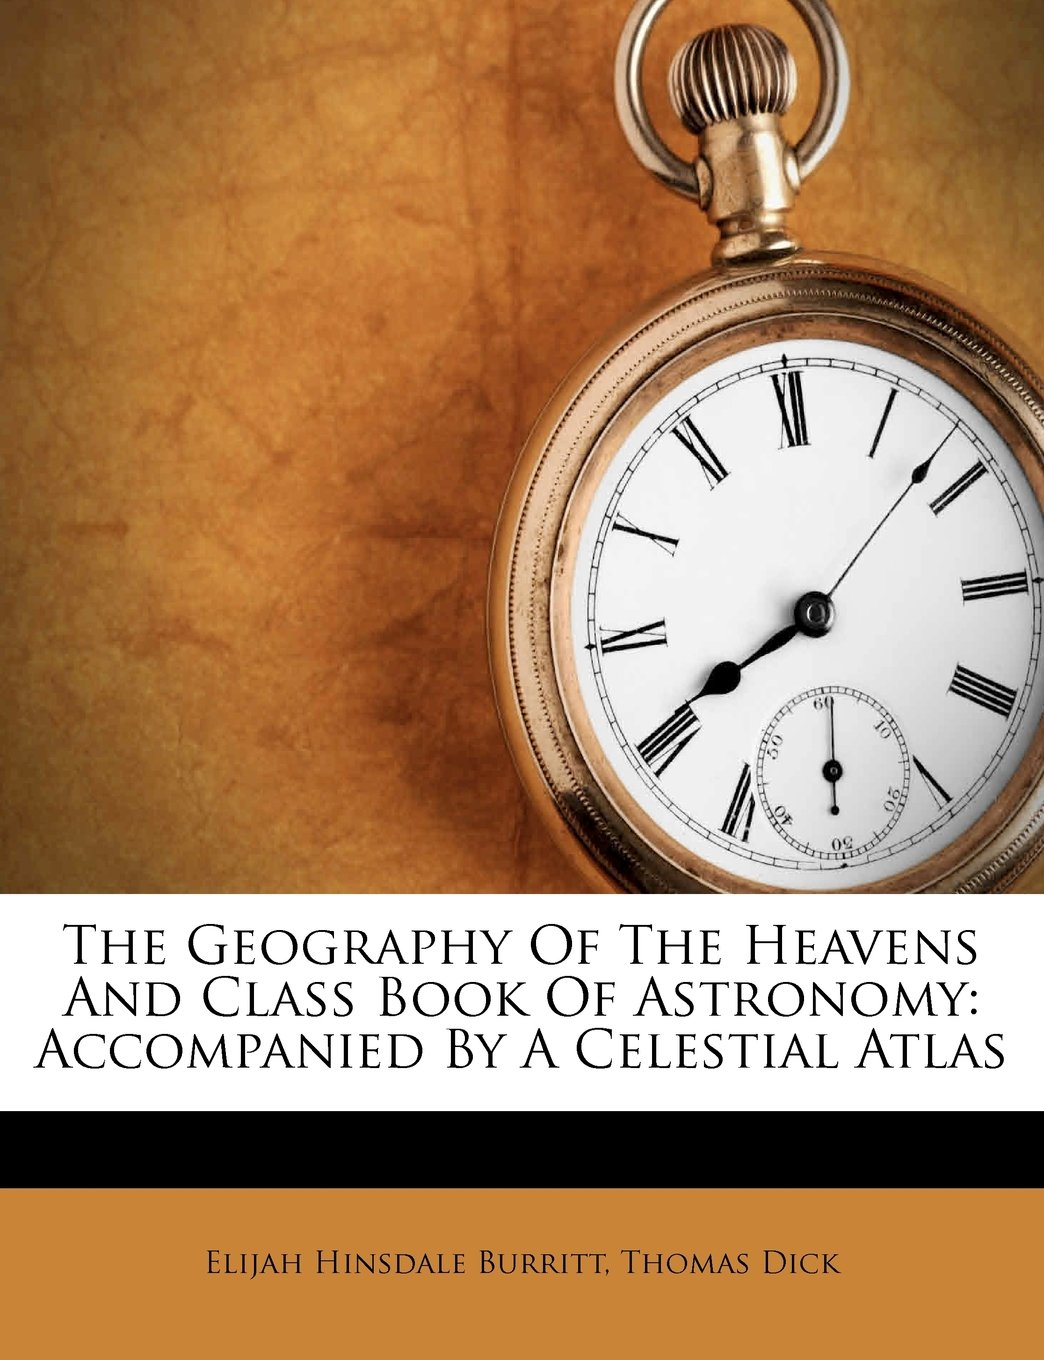 Read Online The Geography Of The Heavens And Class Book Of Astronomy: Accompanied By A Celestial Atlas pdf